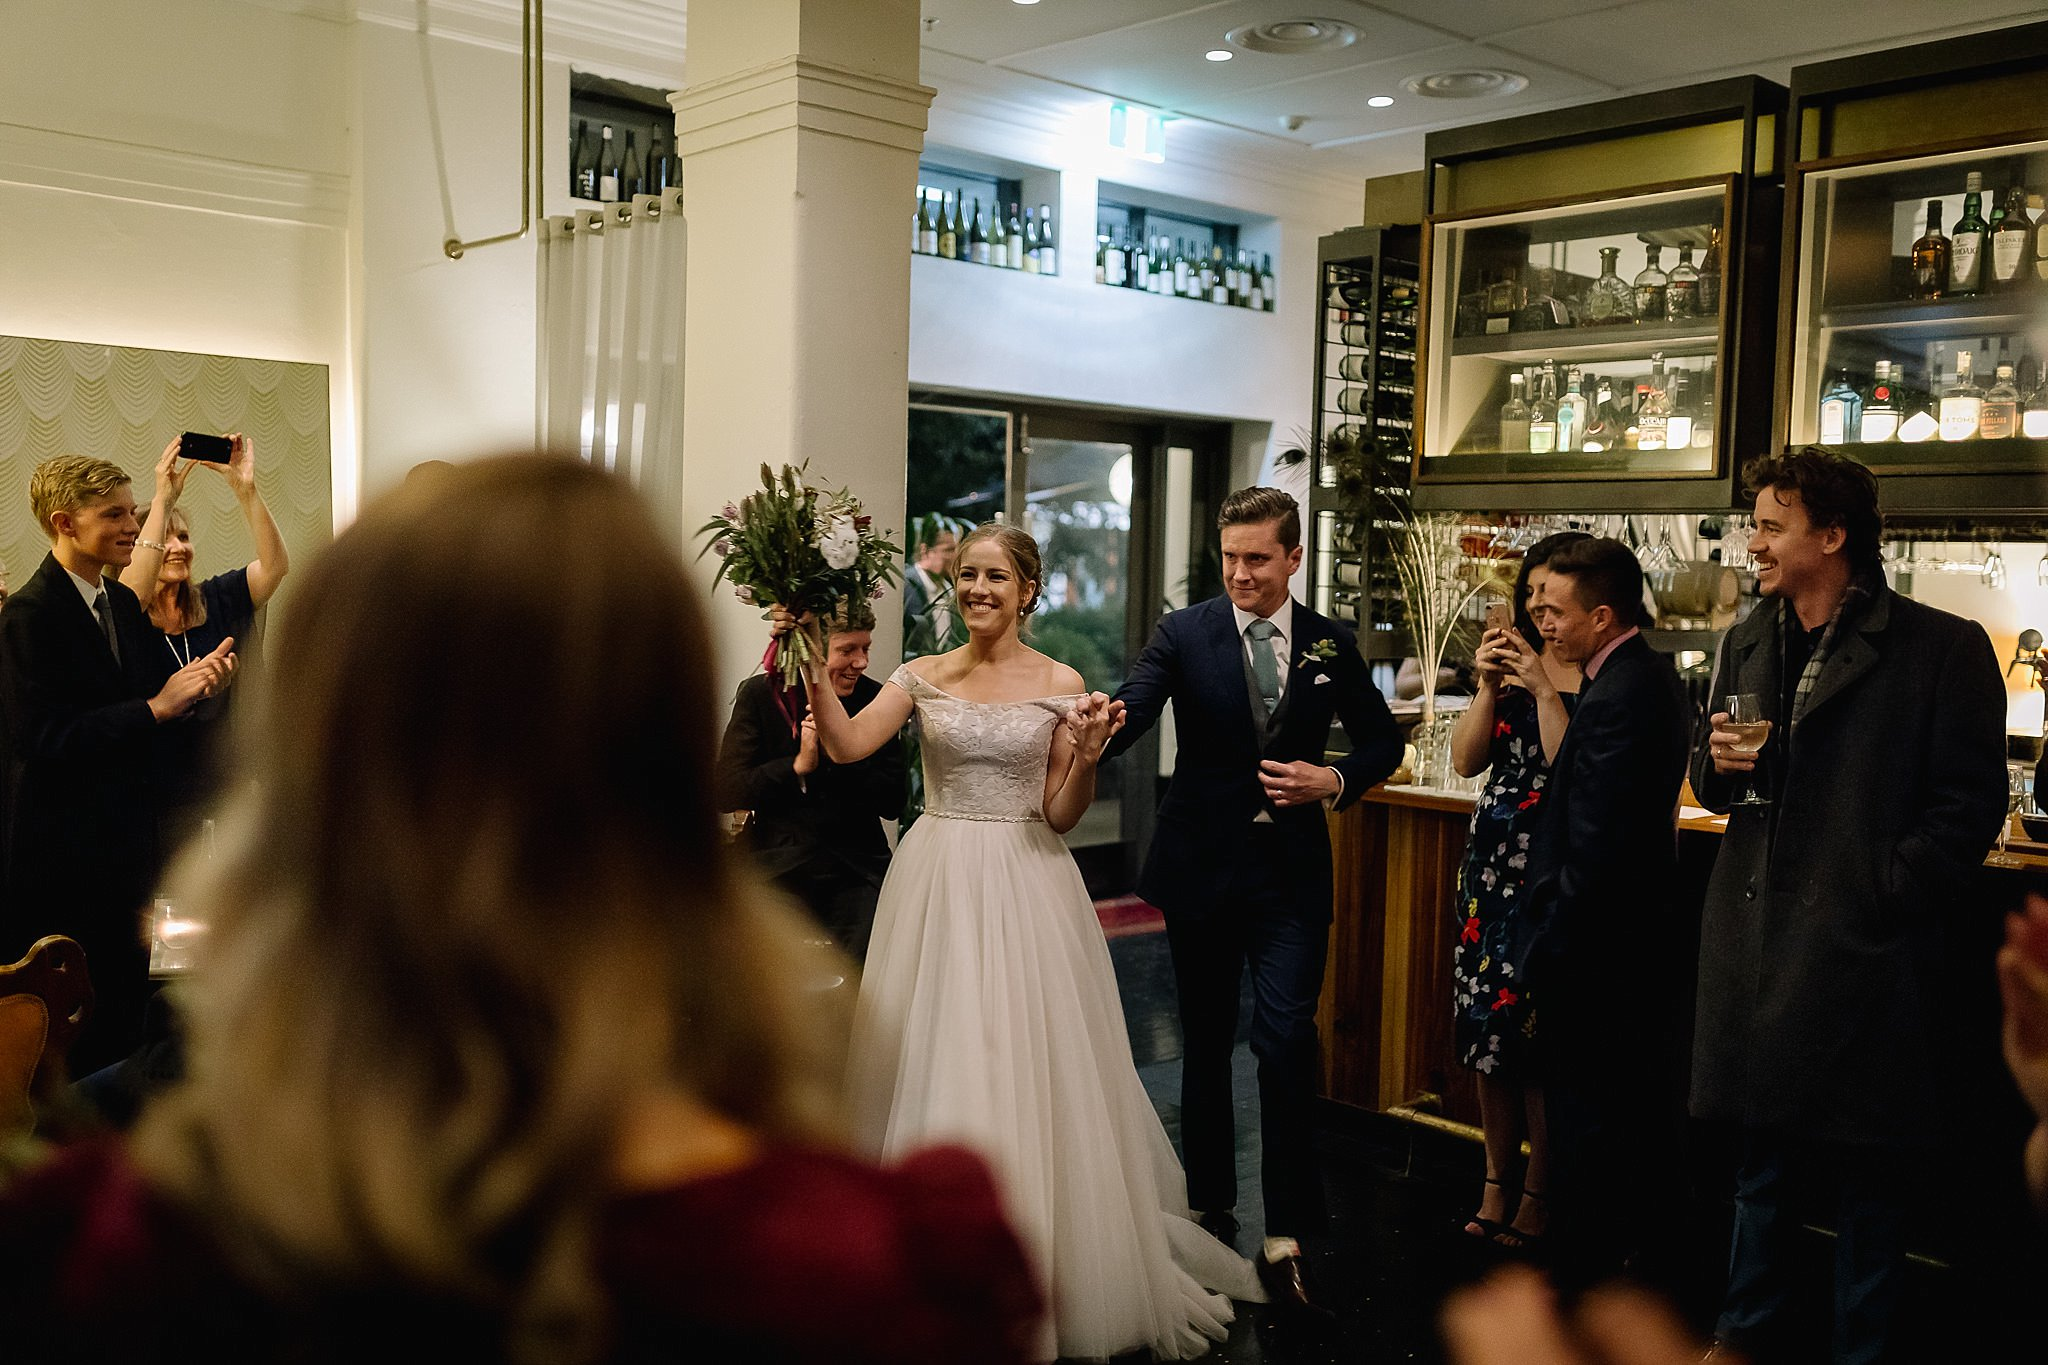 Keepsakephoto by the Keeffes,ACT wedding photographer,ACT weddings,canberra weddings,Canberra Wedding Photography,Canberra Wedding Photographer,canberra wedding,Parlour,Parlour Wine room wedding,Nishi gallery wedding,New Acton,Canberra Urban Wedding,